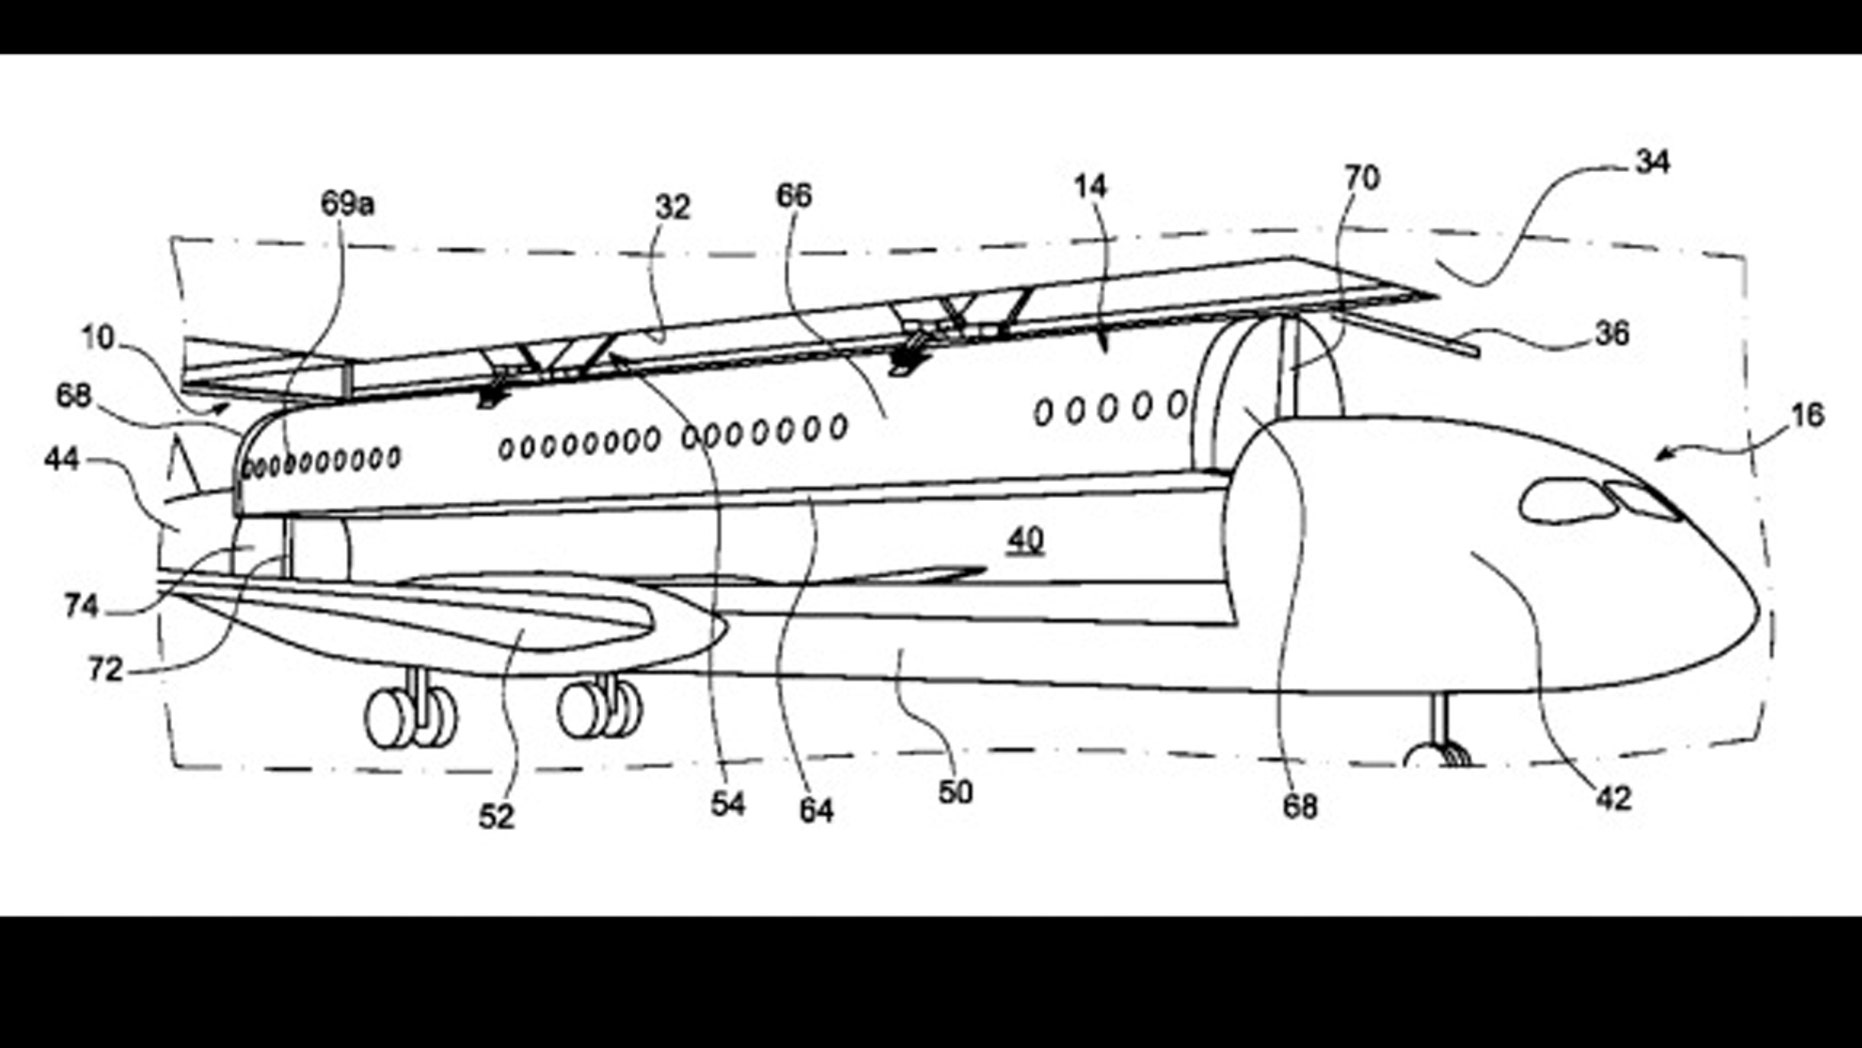 Modular cabins, like shipping container, is Airbus' new idea for getting people in and out of planes faster.